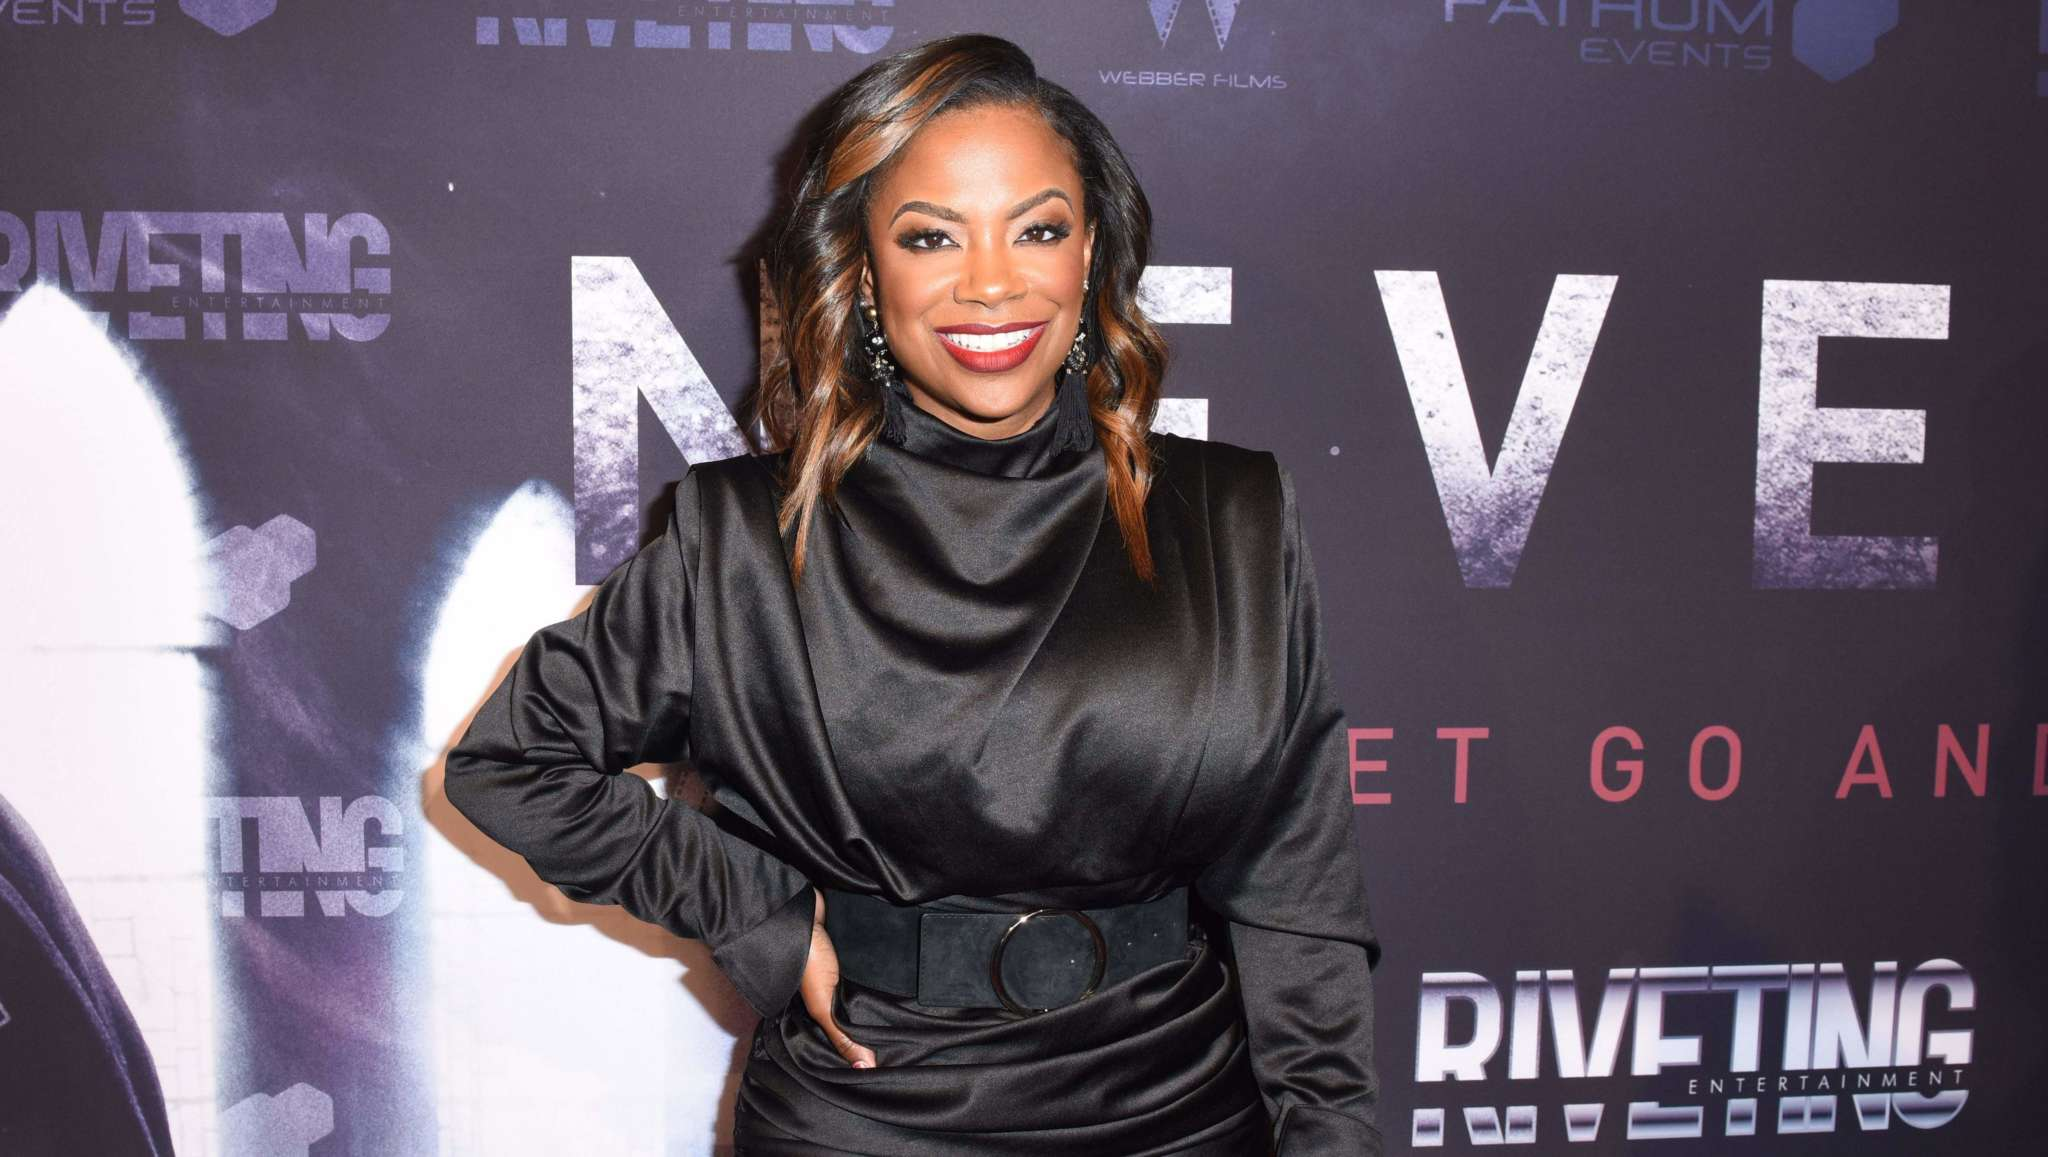 Kandi Burruss Wishes A Happy Birthday To Her Homie – See The Sweet Pics She Shared